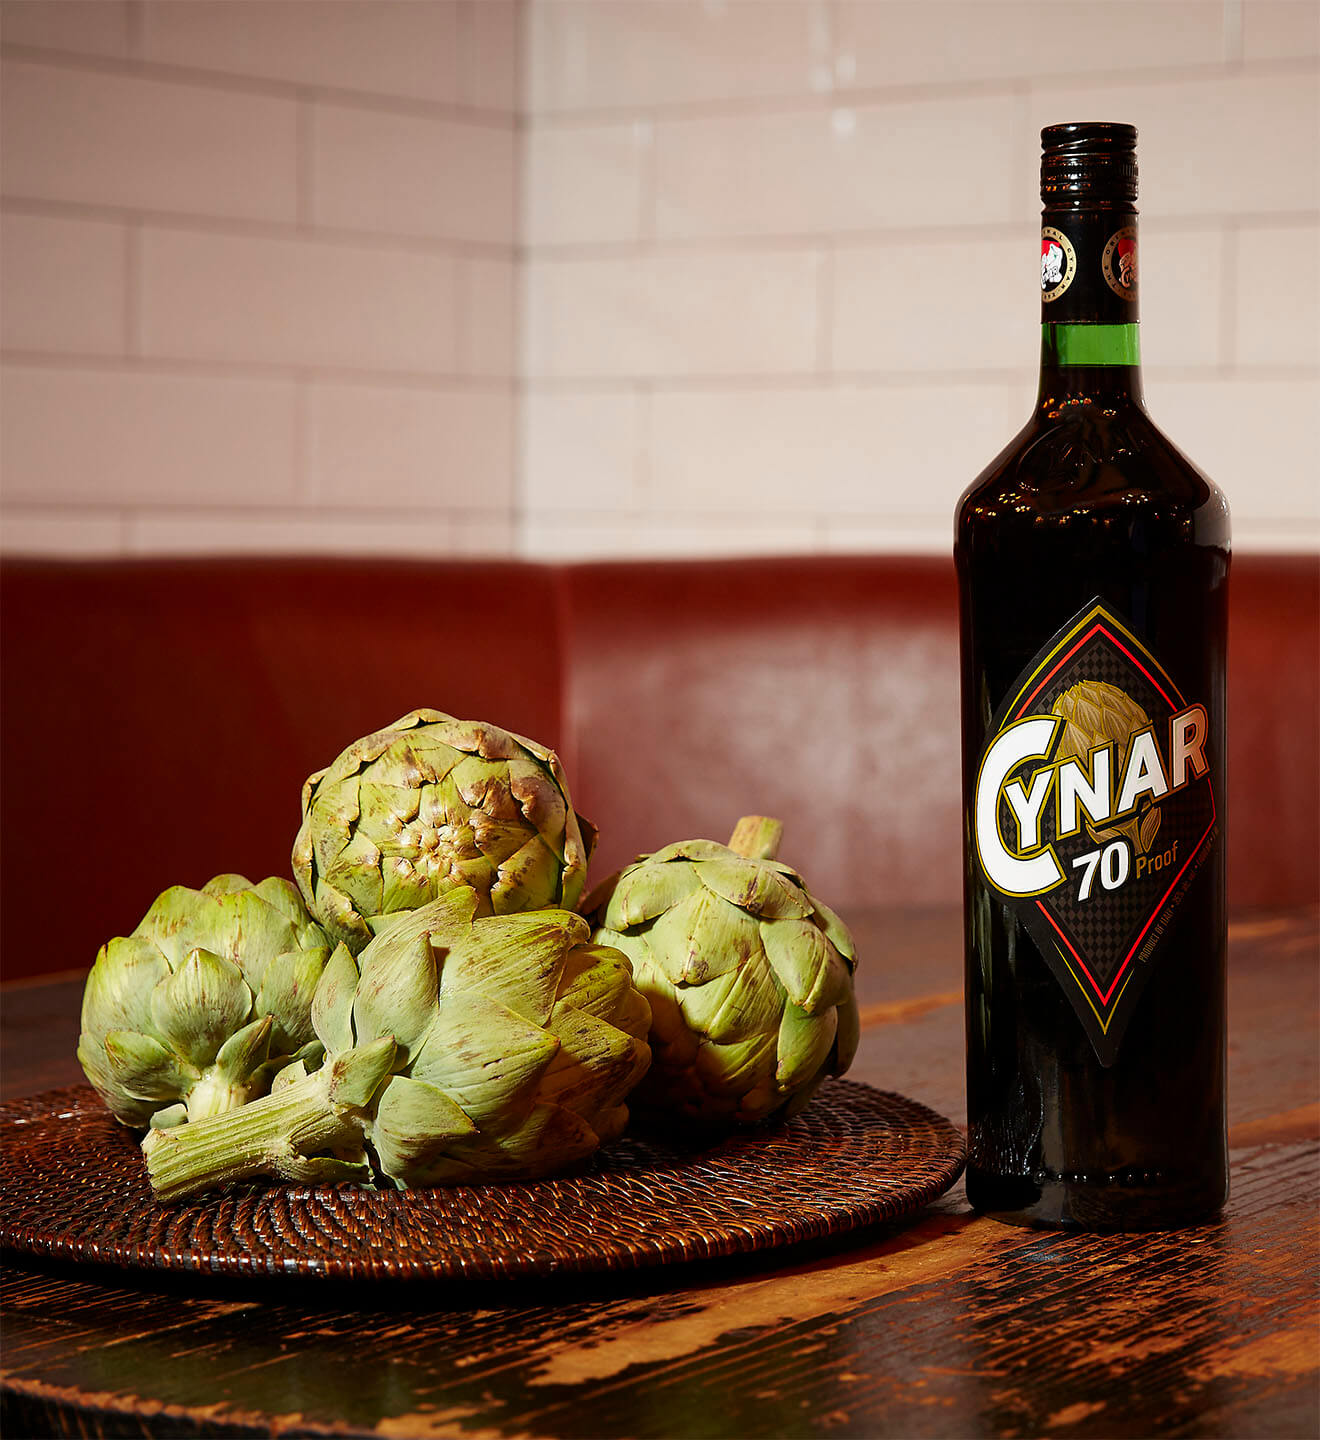 Cynar 70 Proof, artichokes and bottle